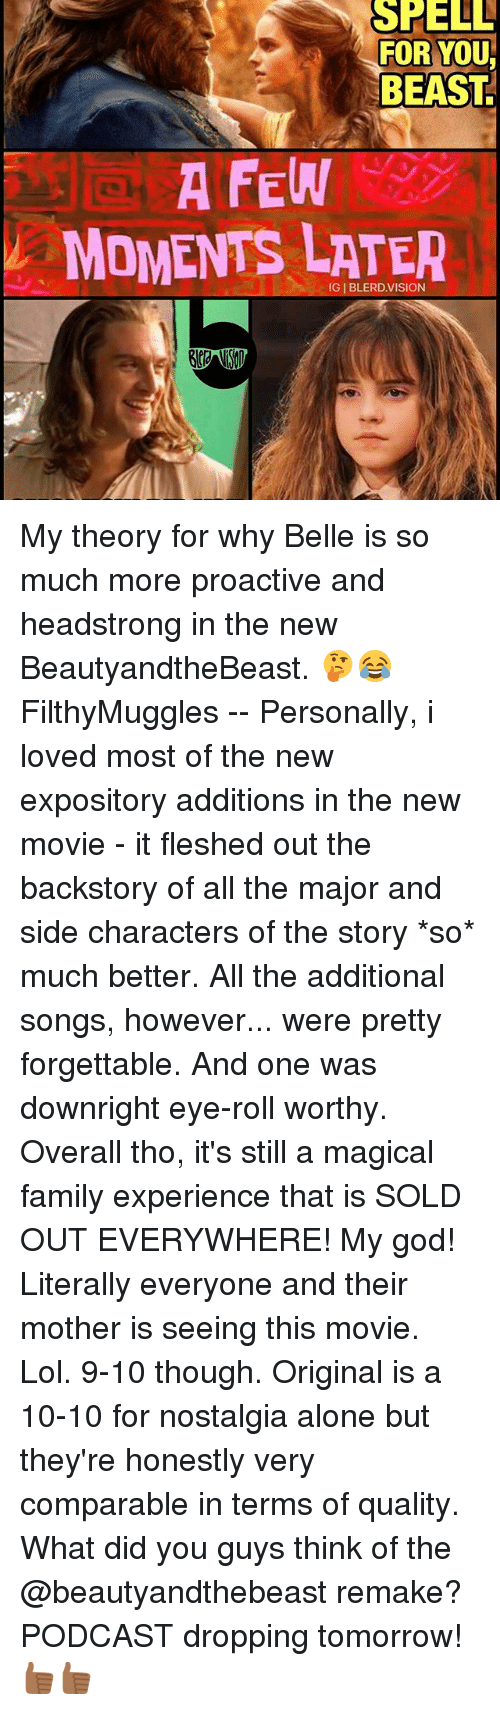 Memes, 🤖, and Shell: SHELL  FOR YOU  BEAST  A FEW  MOMENTS LATER My theory for why Belle is so much more proactive and headstrong in the new BeautyandtheBeast. 🤔😂 FilthyMuggles -- Personally, i loved most of the new expository additions in the new movie - it fleshed out the backstory of all the major and side characters of the story *so* much better. All the additional songs, however... were pretty forgettable. And one was downright eye-roll worthy. Overall tho, it's still a magical family experience that is SOLD OUT EVERYWHERE! My god! Literally everyone and their mother is seeing this movie. Lol. 9-10 though. Original is a 10-10 for nostalgia alone but they're honestly very comparable in terms of quality. What did you guys think of the @beautyandthebeast remake? PODCAST dropping tomorrow! 👍🏾👍🏾